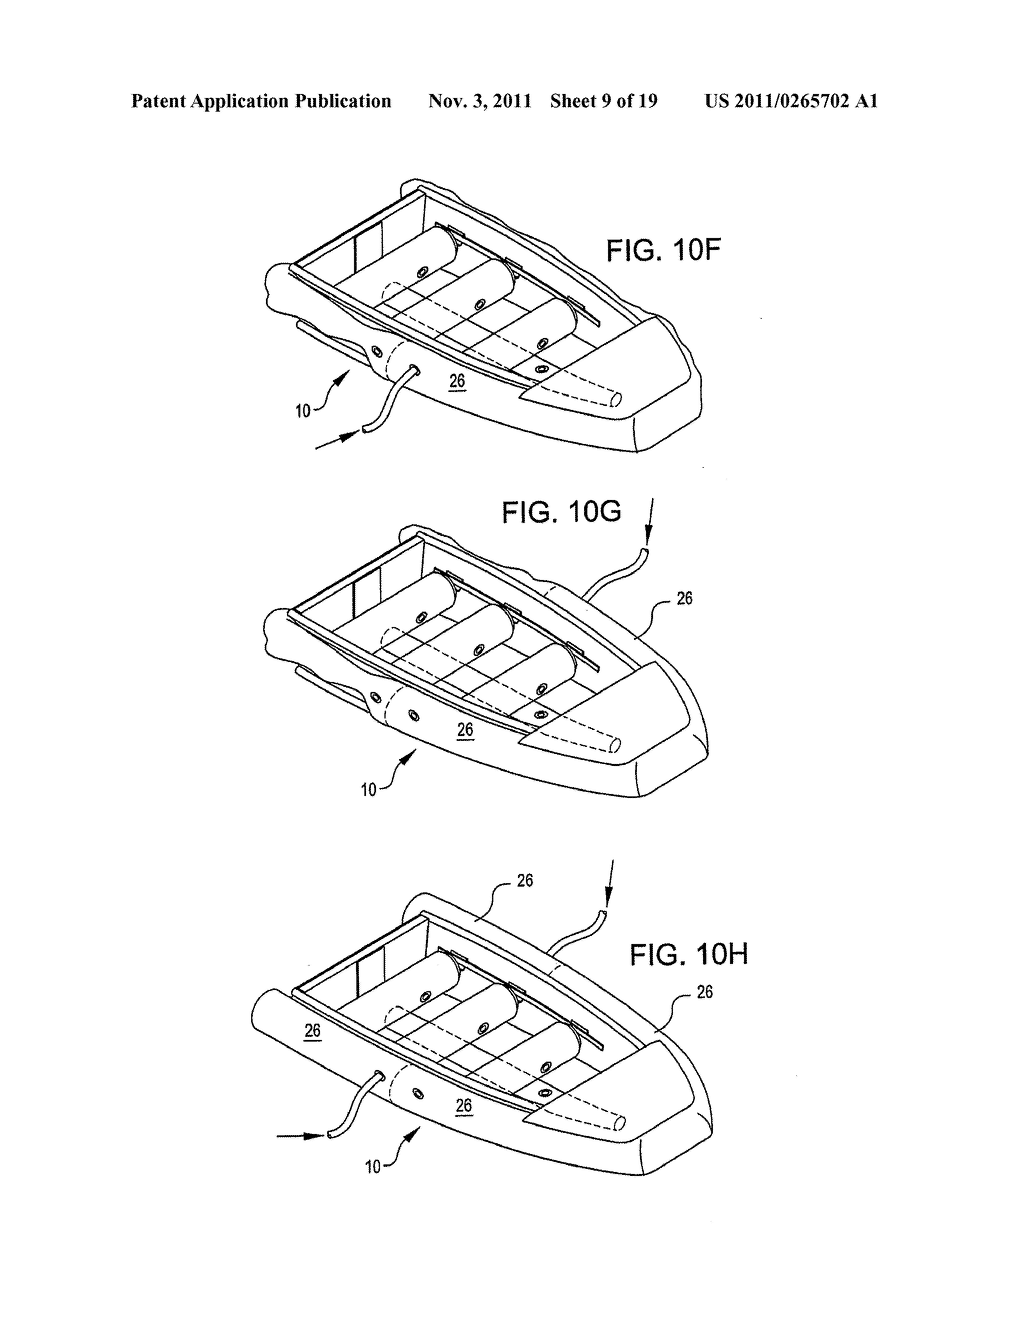 hight resolution of folding transom for a collapsible boat diagram schematic and image 10